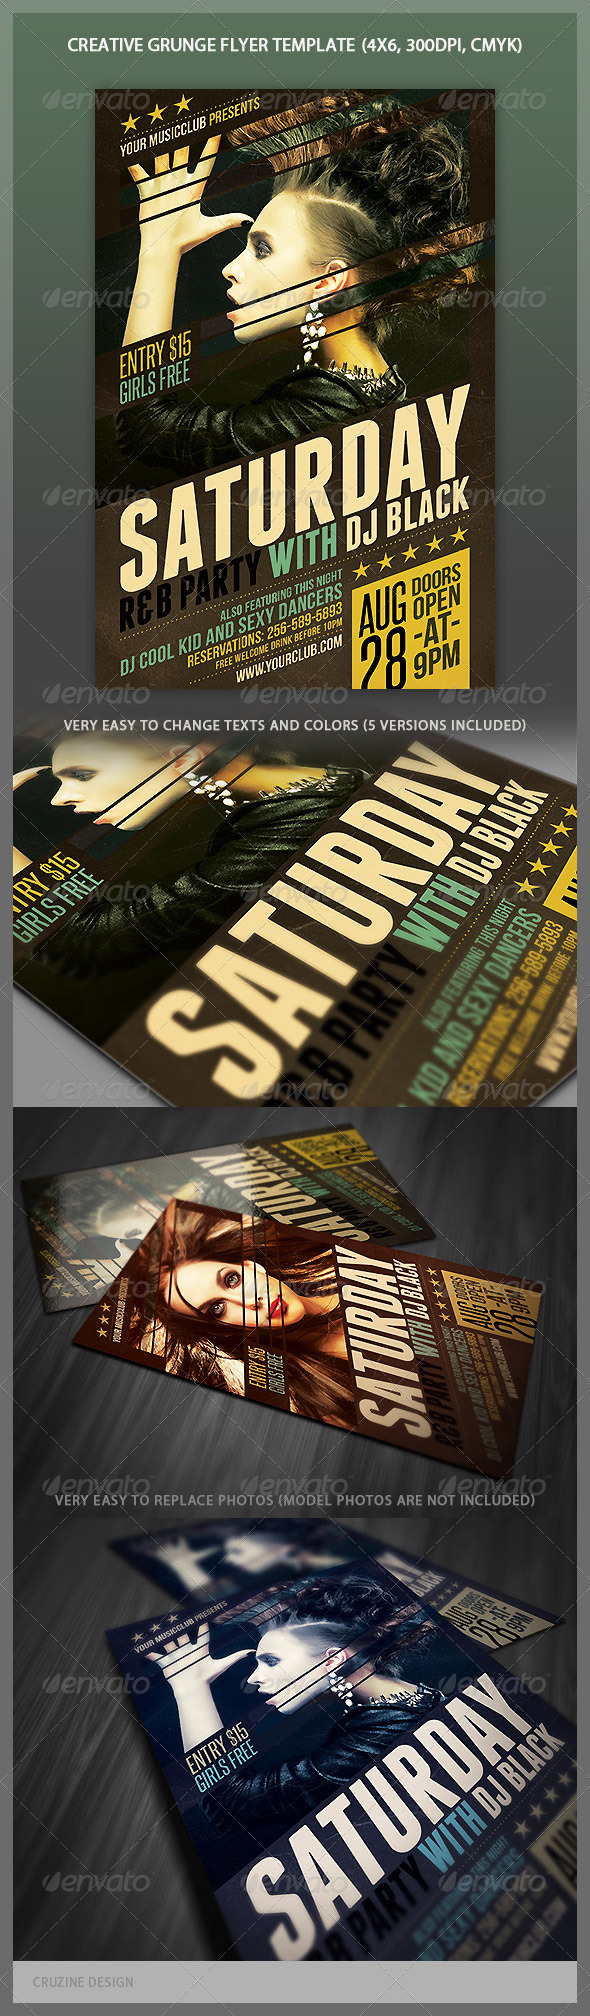 GraphicRiver Creative Grunge Flyer 5234921